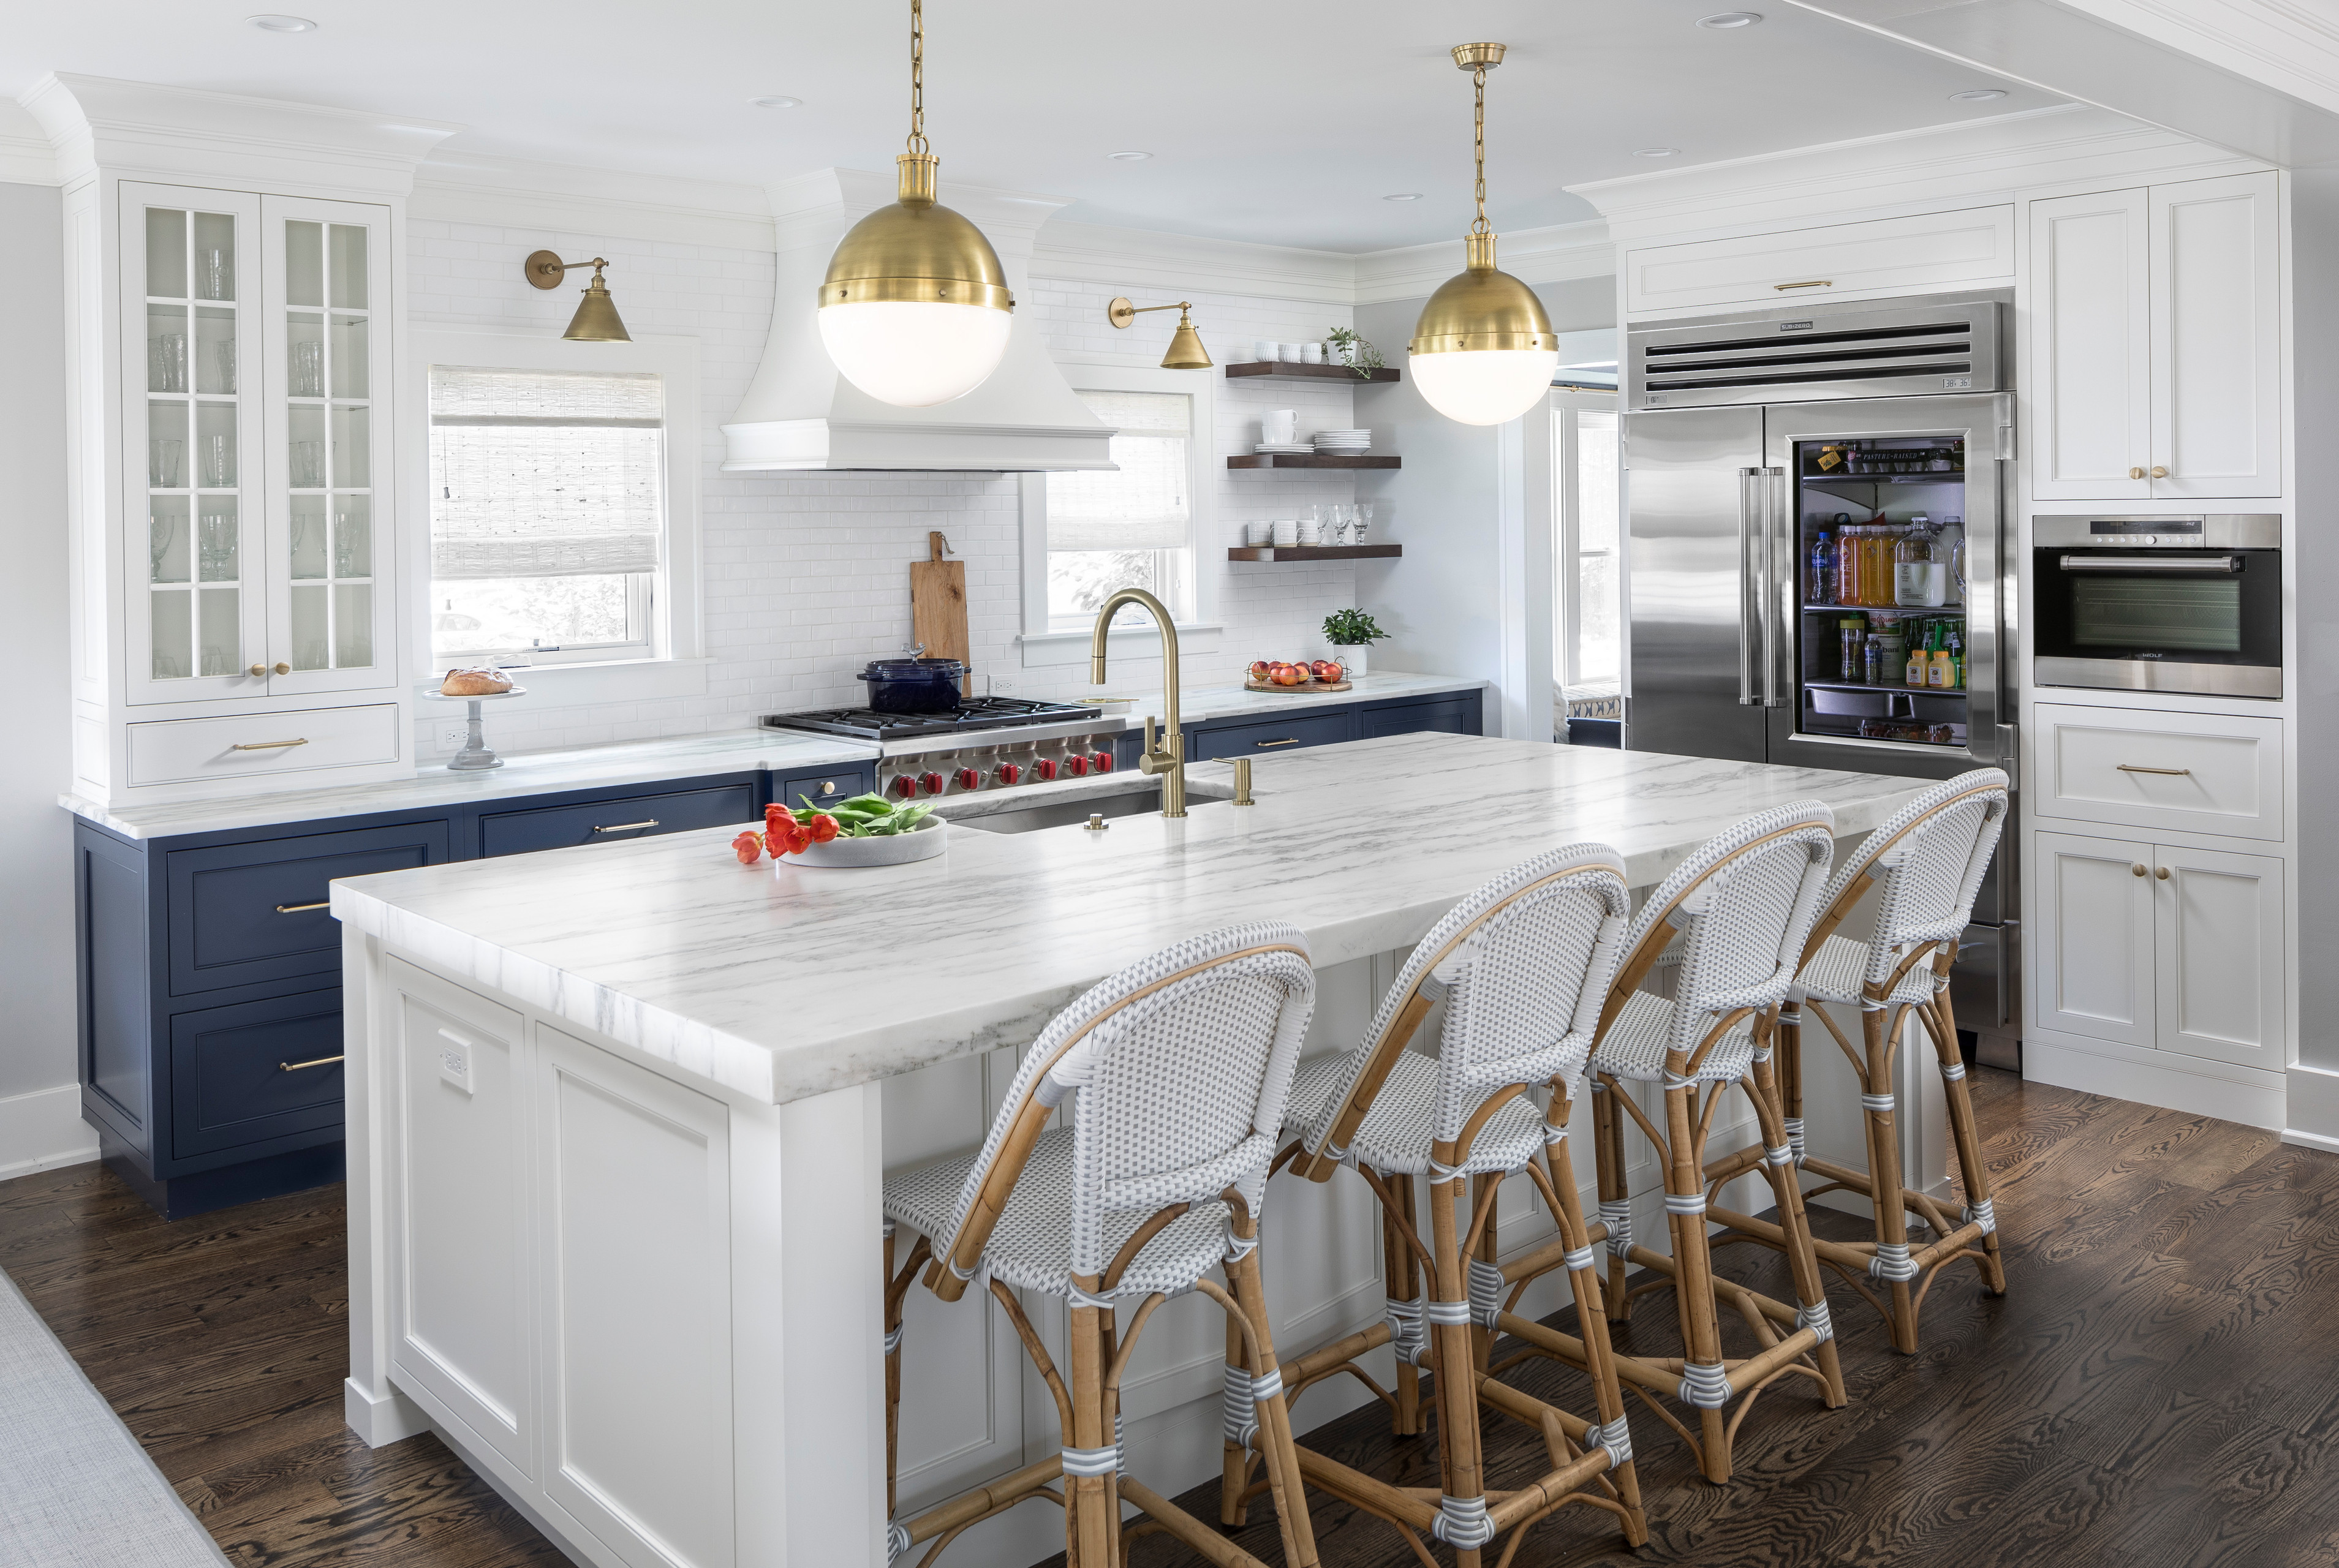 75 Beautiful Kitchen With White Backsplash And White Countertops Pictures Ideas November 2020 Houzz